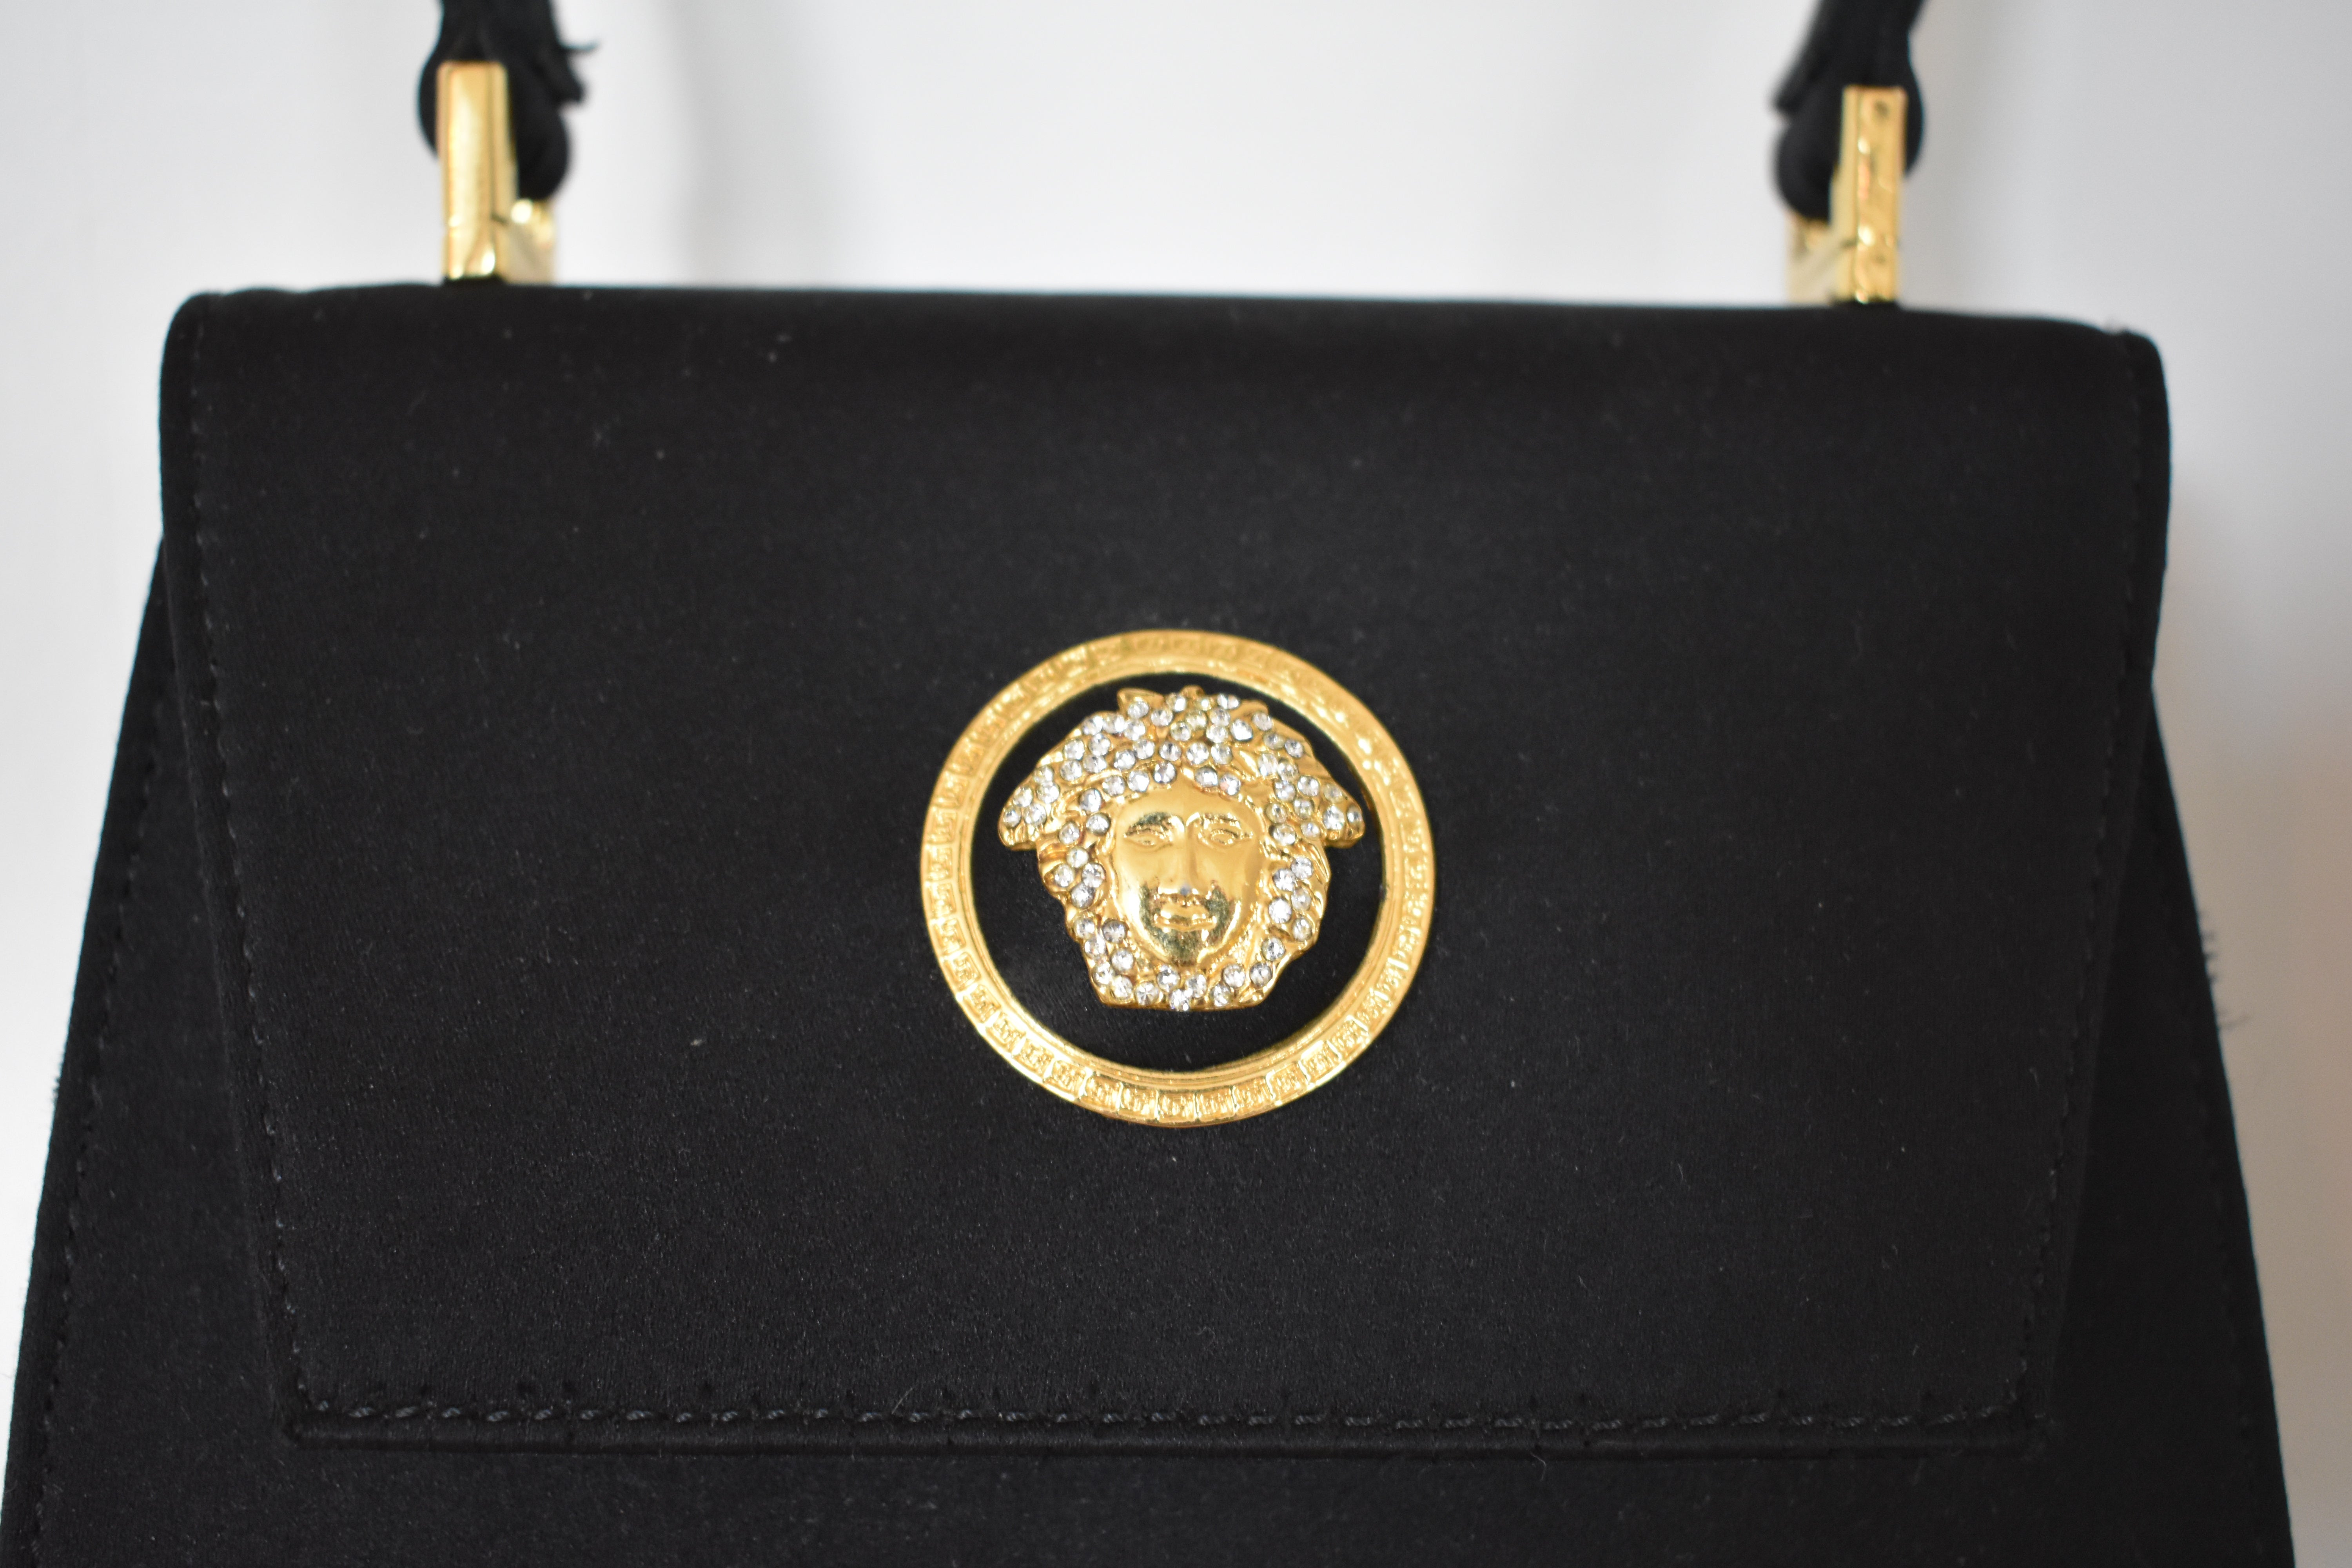 cac9f7794691 Gianni Versace Couture Mini Satin Evening Bag with Medusa Head For Sale at  1stdibs